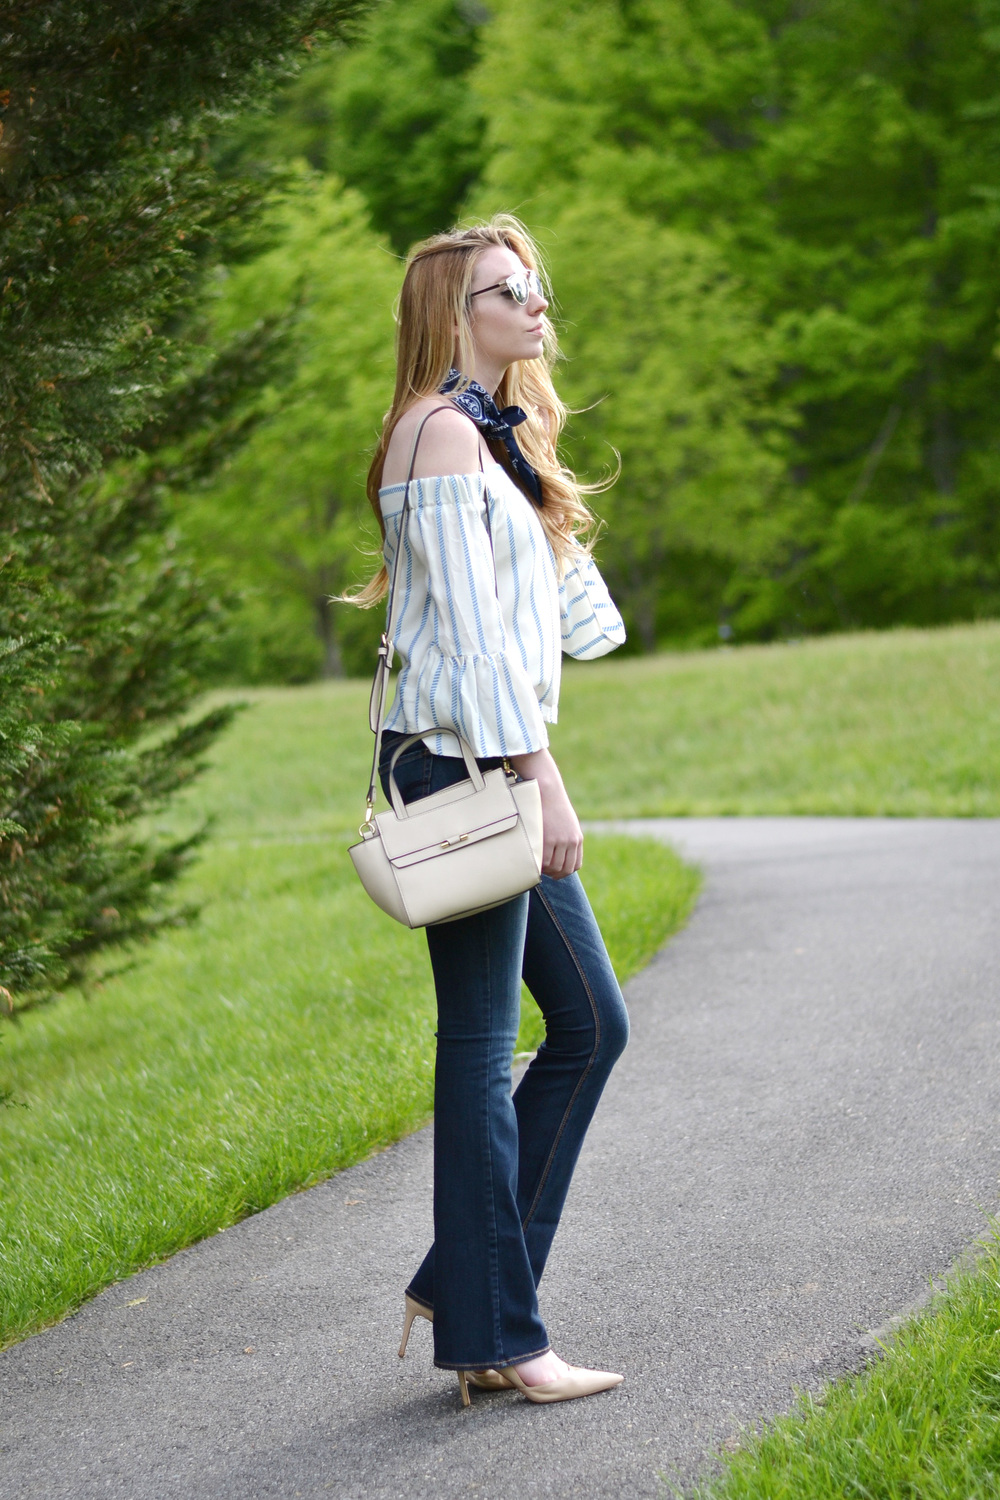 Off-The Shoulder Top & Flared Jeans (via Chic Now)